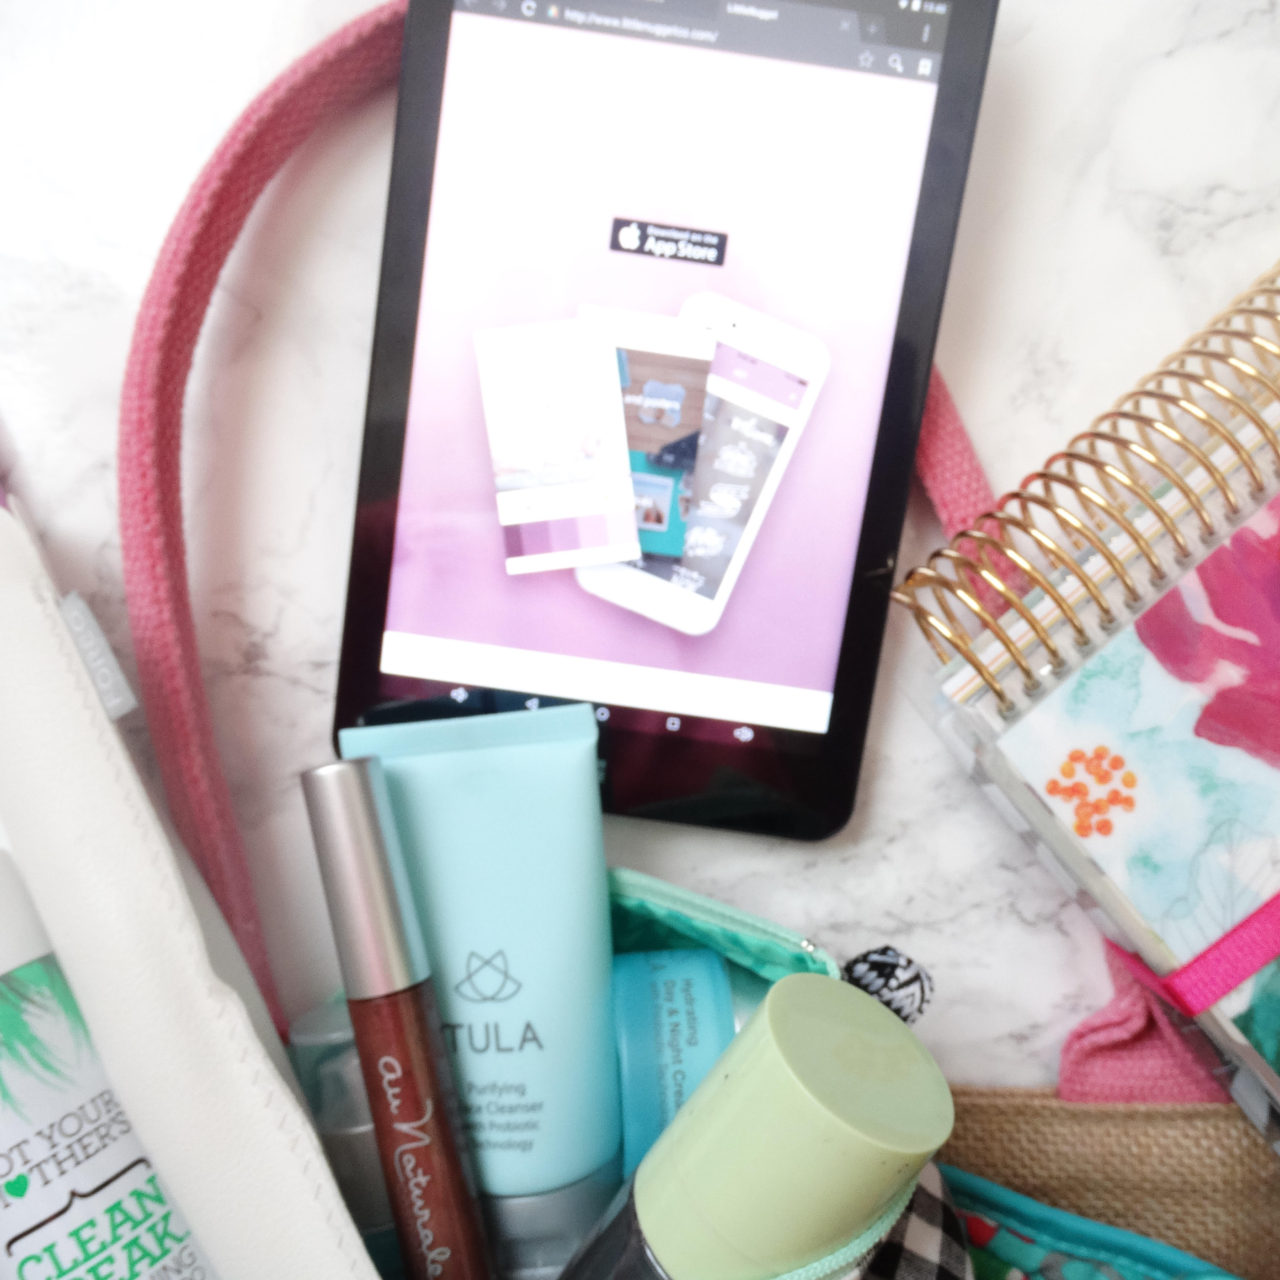 Road trip essentials for moms and kids!